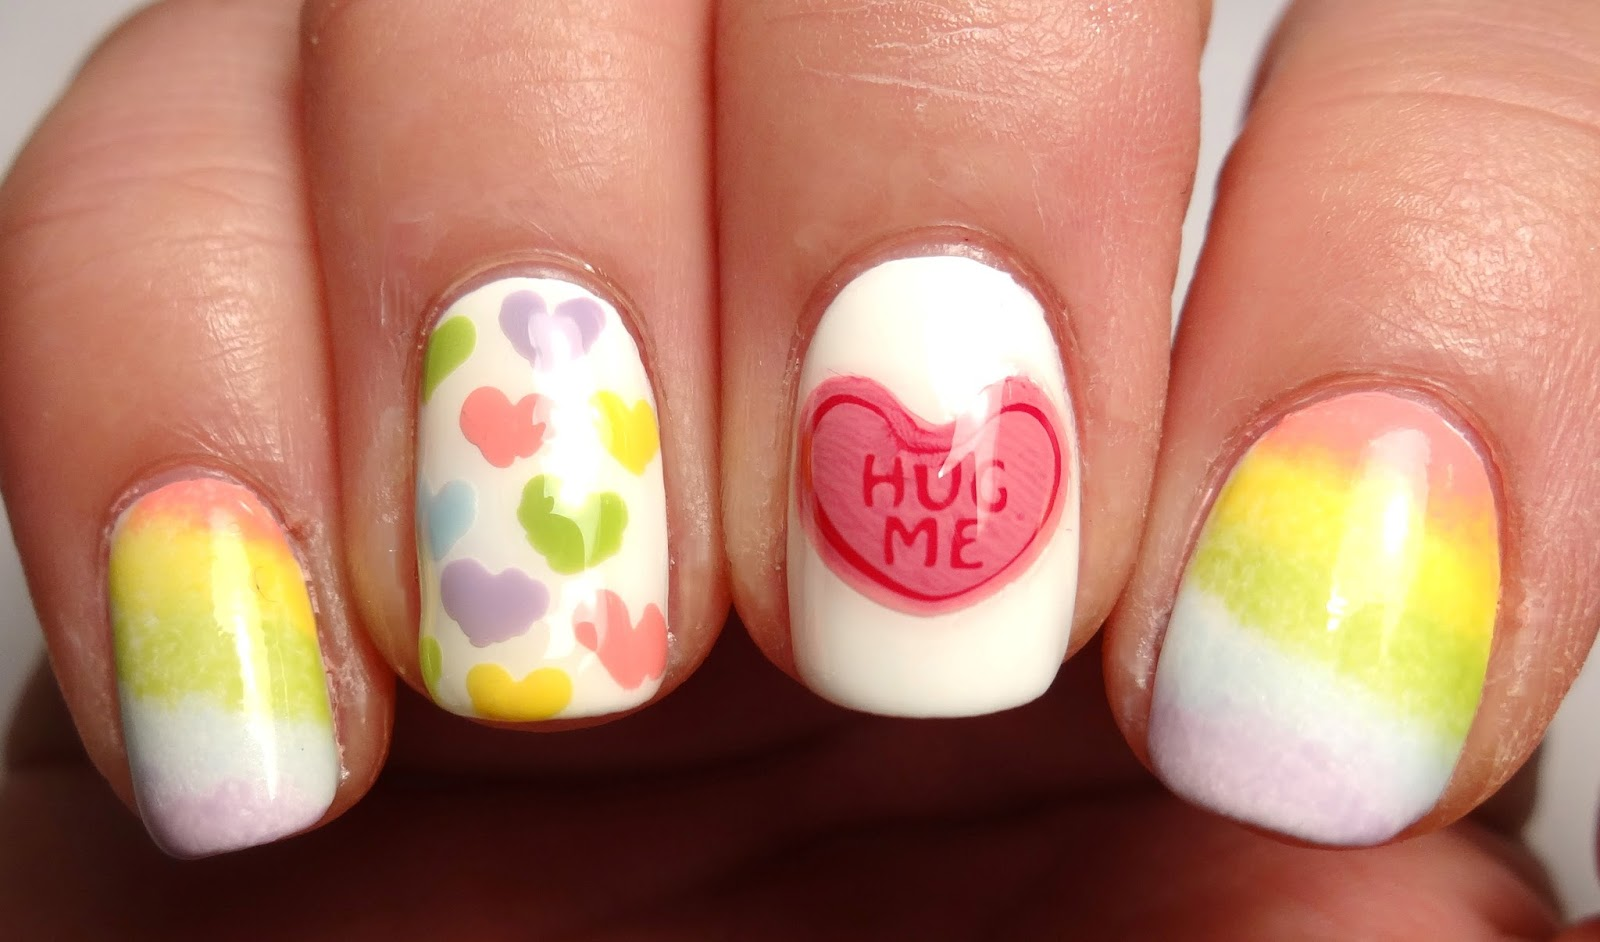 Conversation Heart Stamped Nails